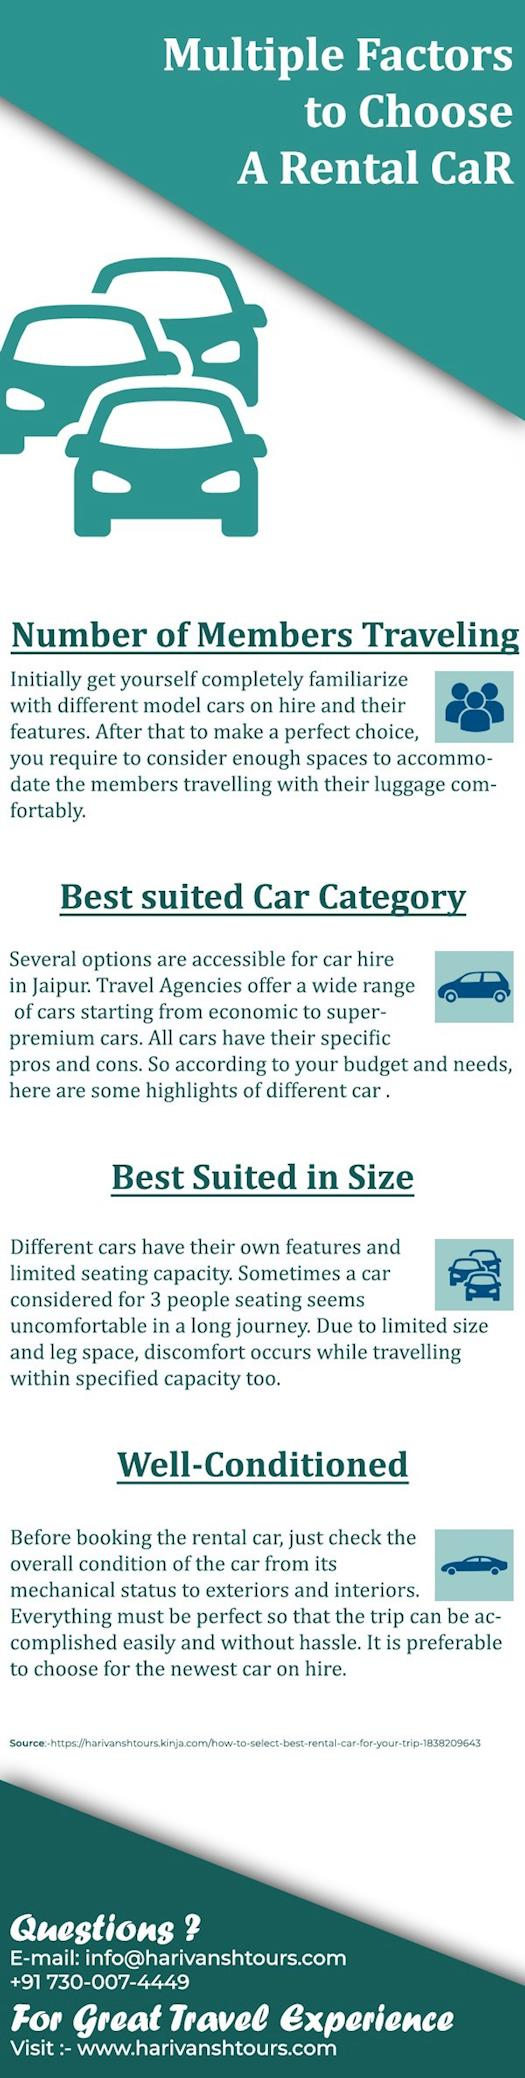 Multiple Factors To Choose A Rental Car